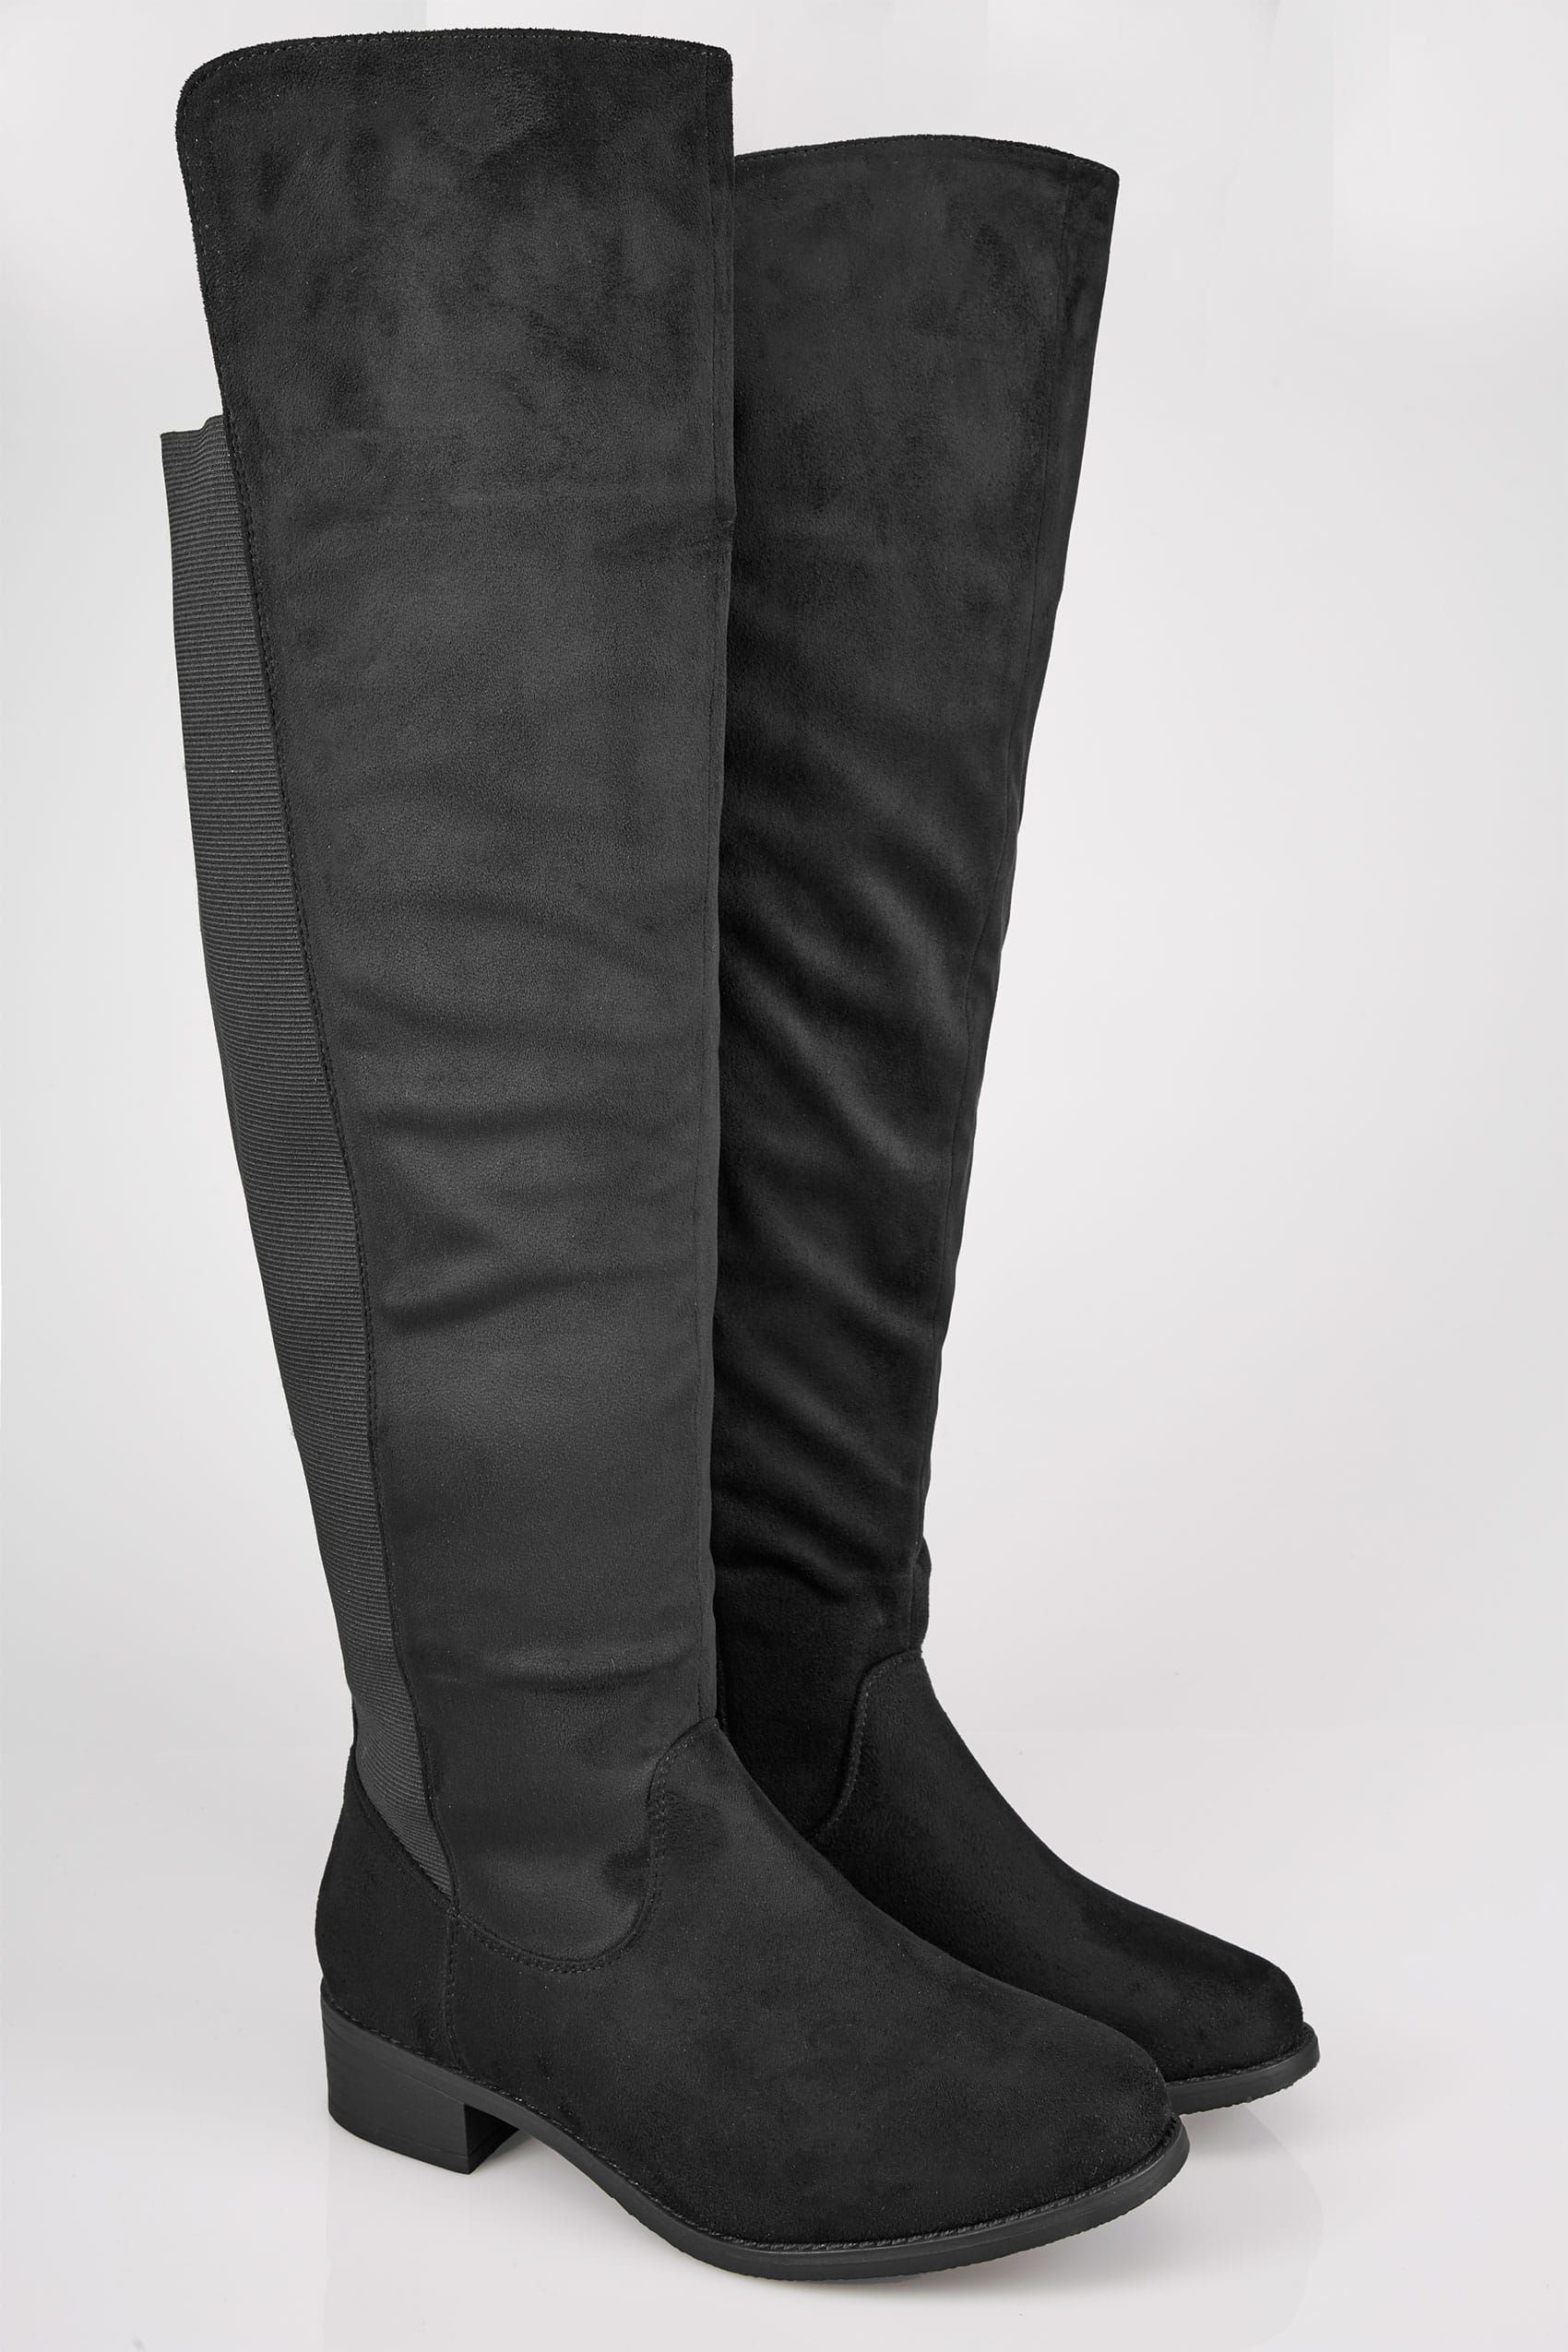 Black Stretch Faux Suede Over The Knee Boots In Extra Wide